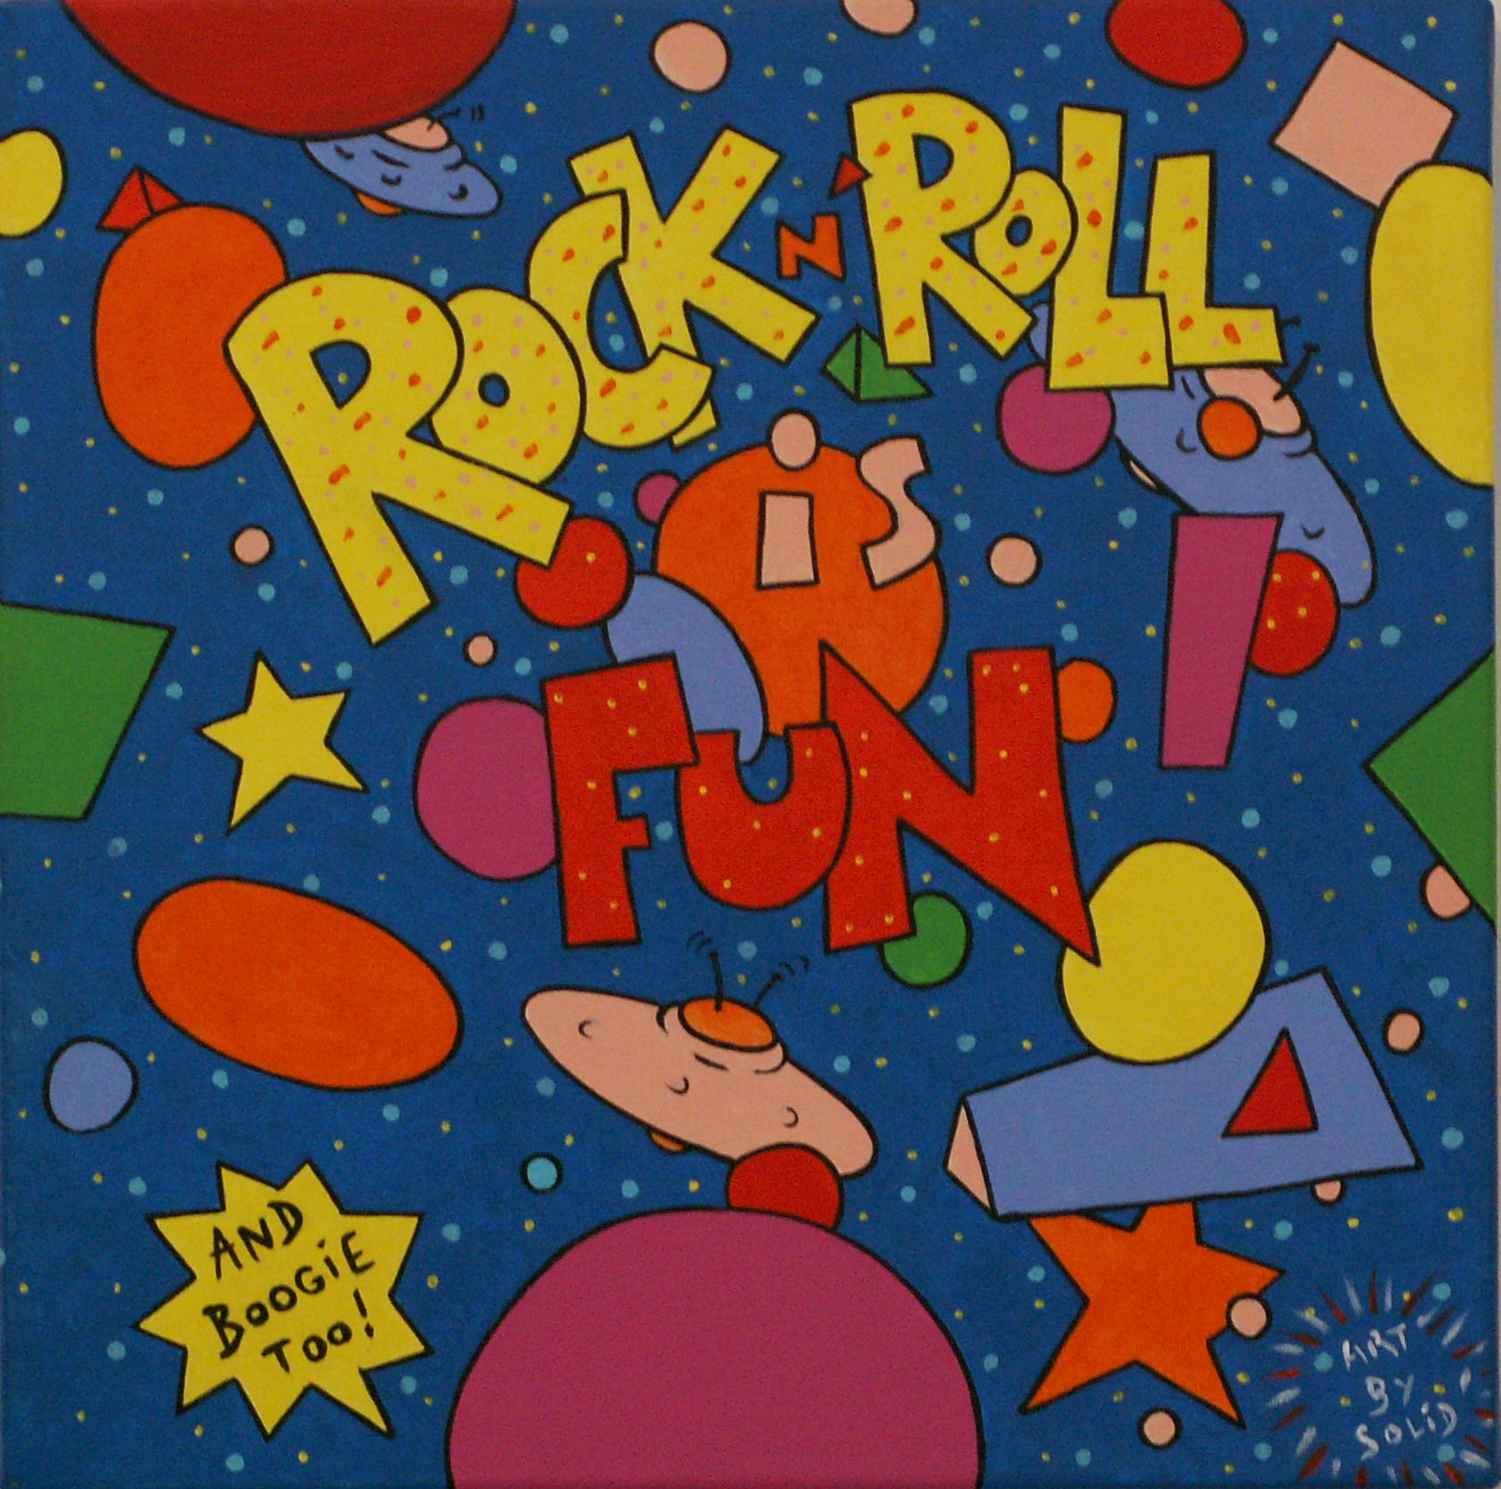 Rock'n'Roll is Fun! (30x30)